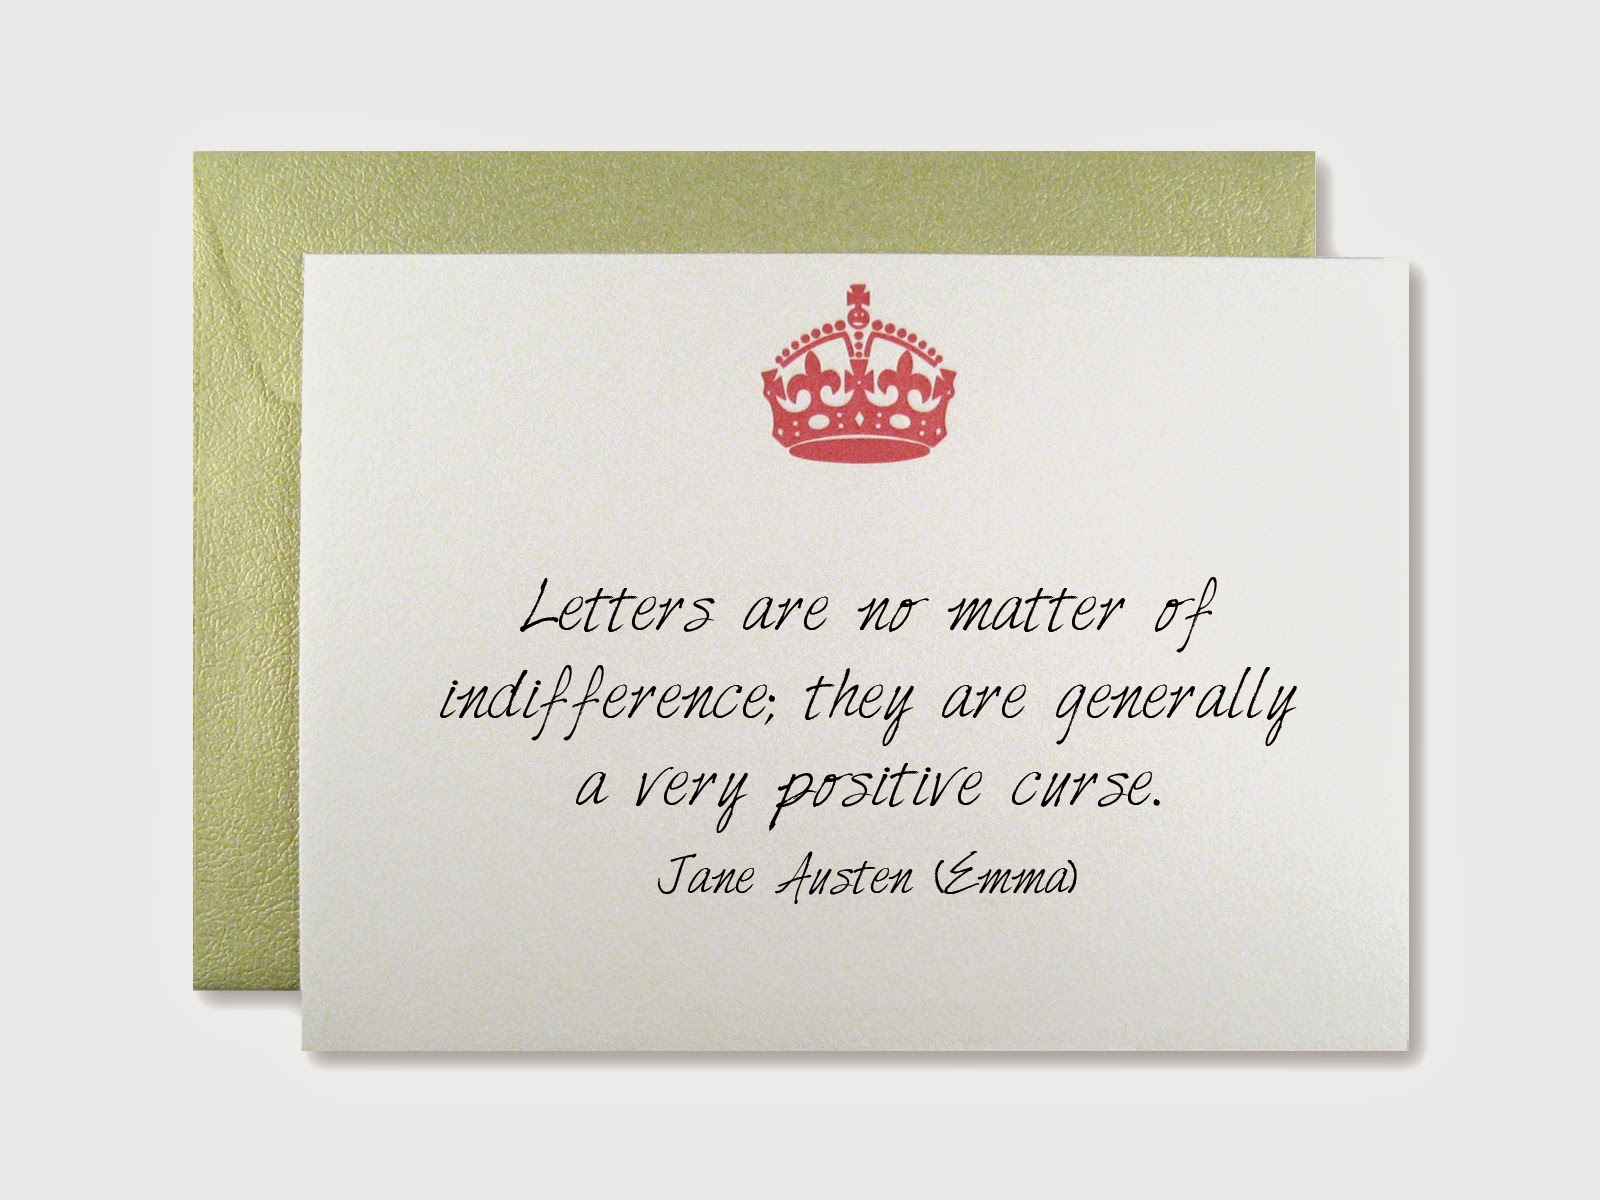 Letters are no matter of indifference; they are generally a very positive curse. Jane Austen (Emma)